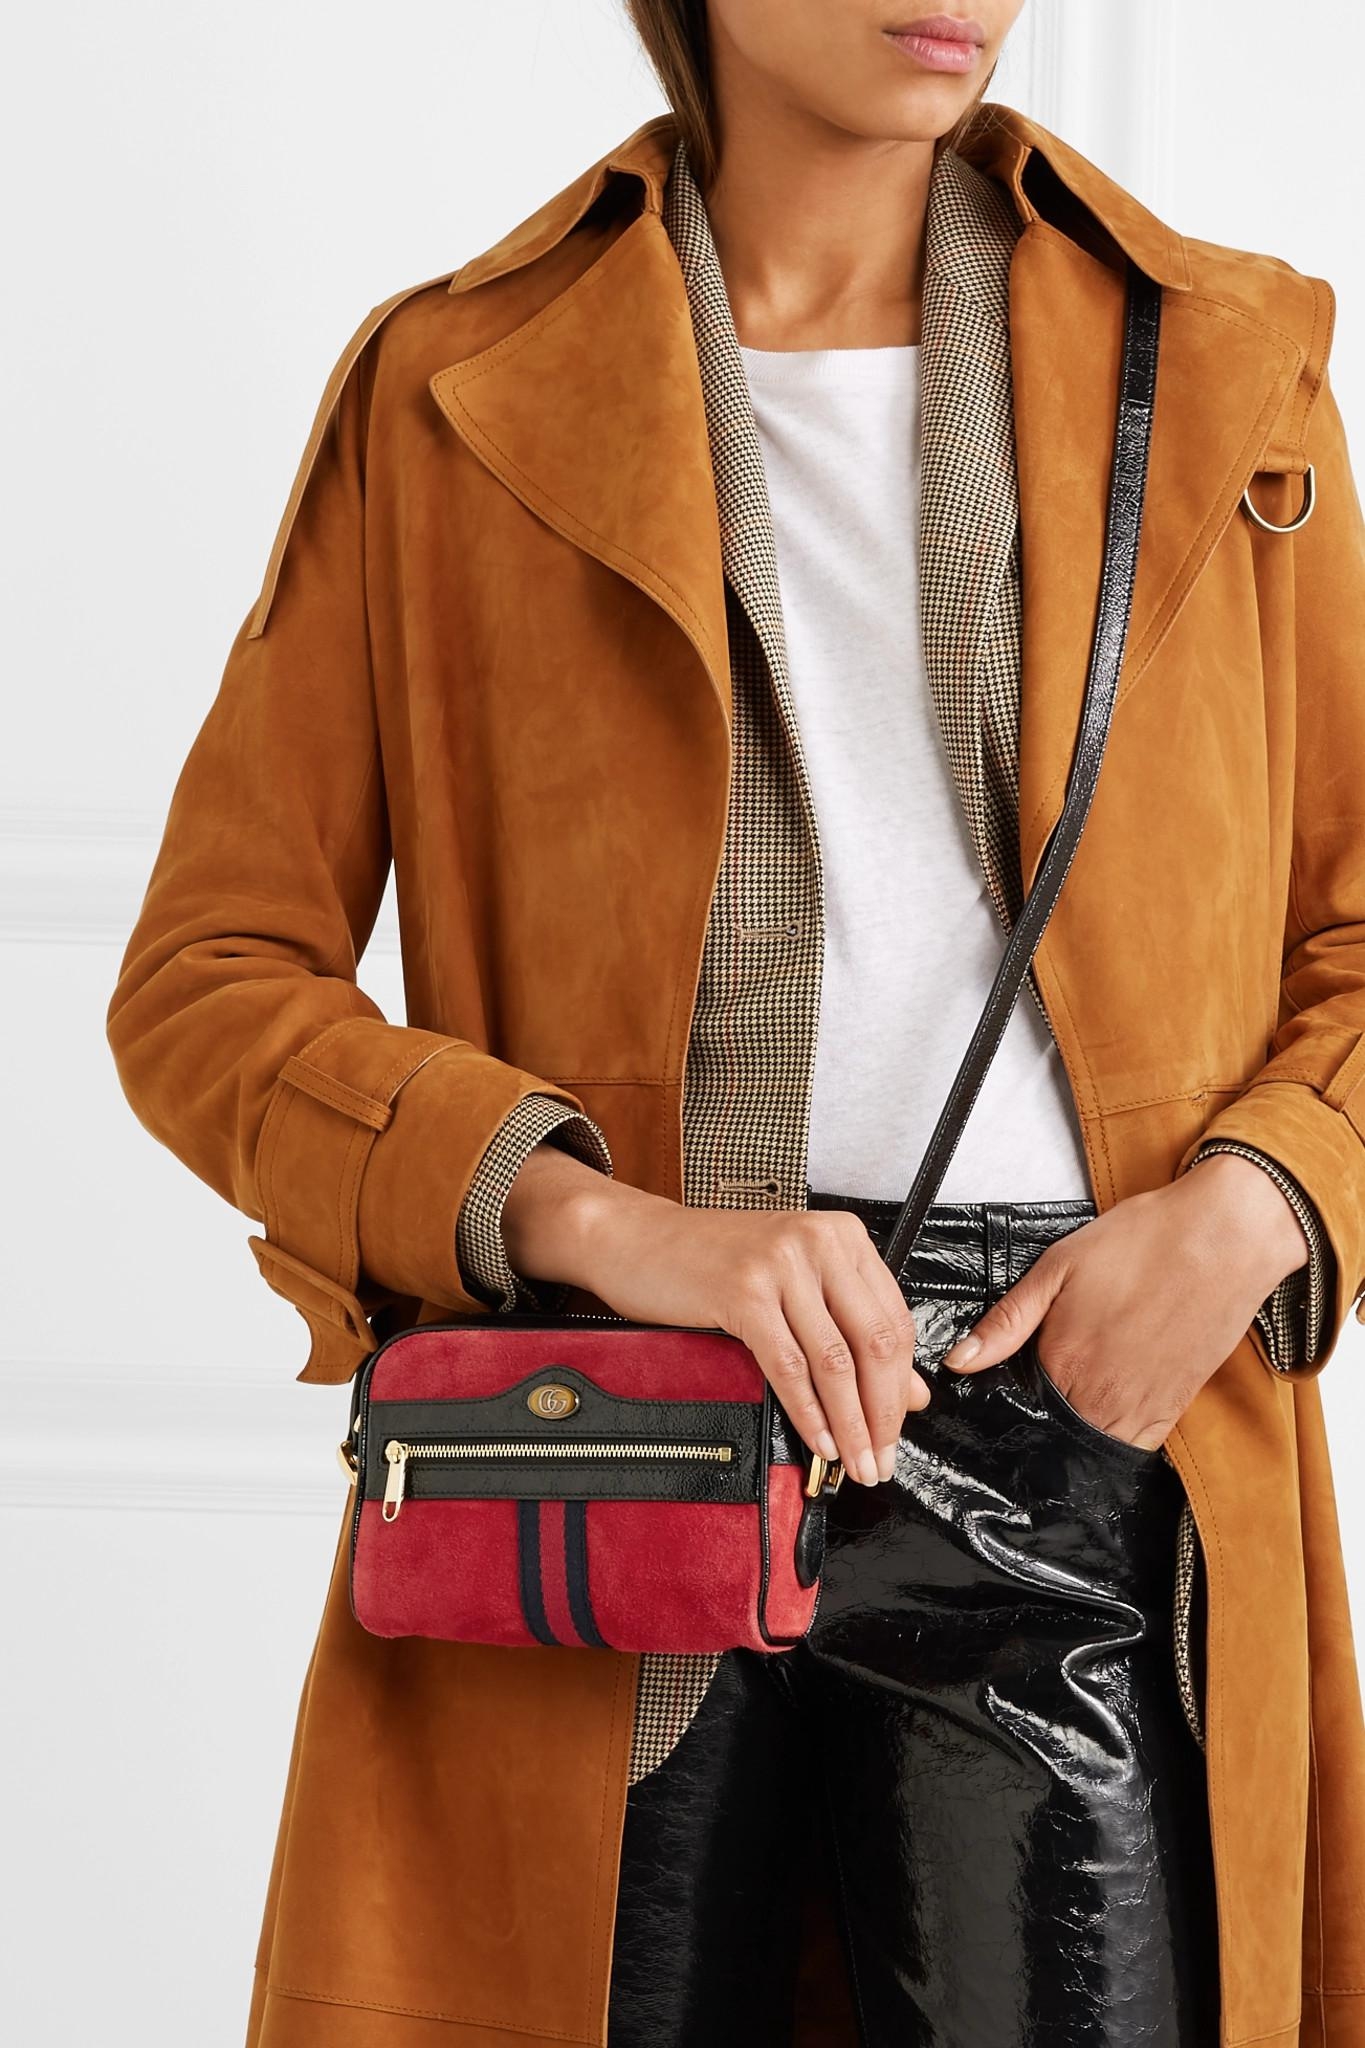 e9b41aea72d3 Gucci - Red Ophidia Patent Leather-trimmed Suede Shoulder Bag - Lyst. View  fullscreen